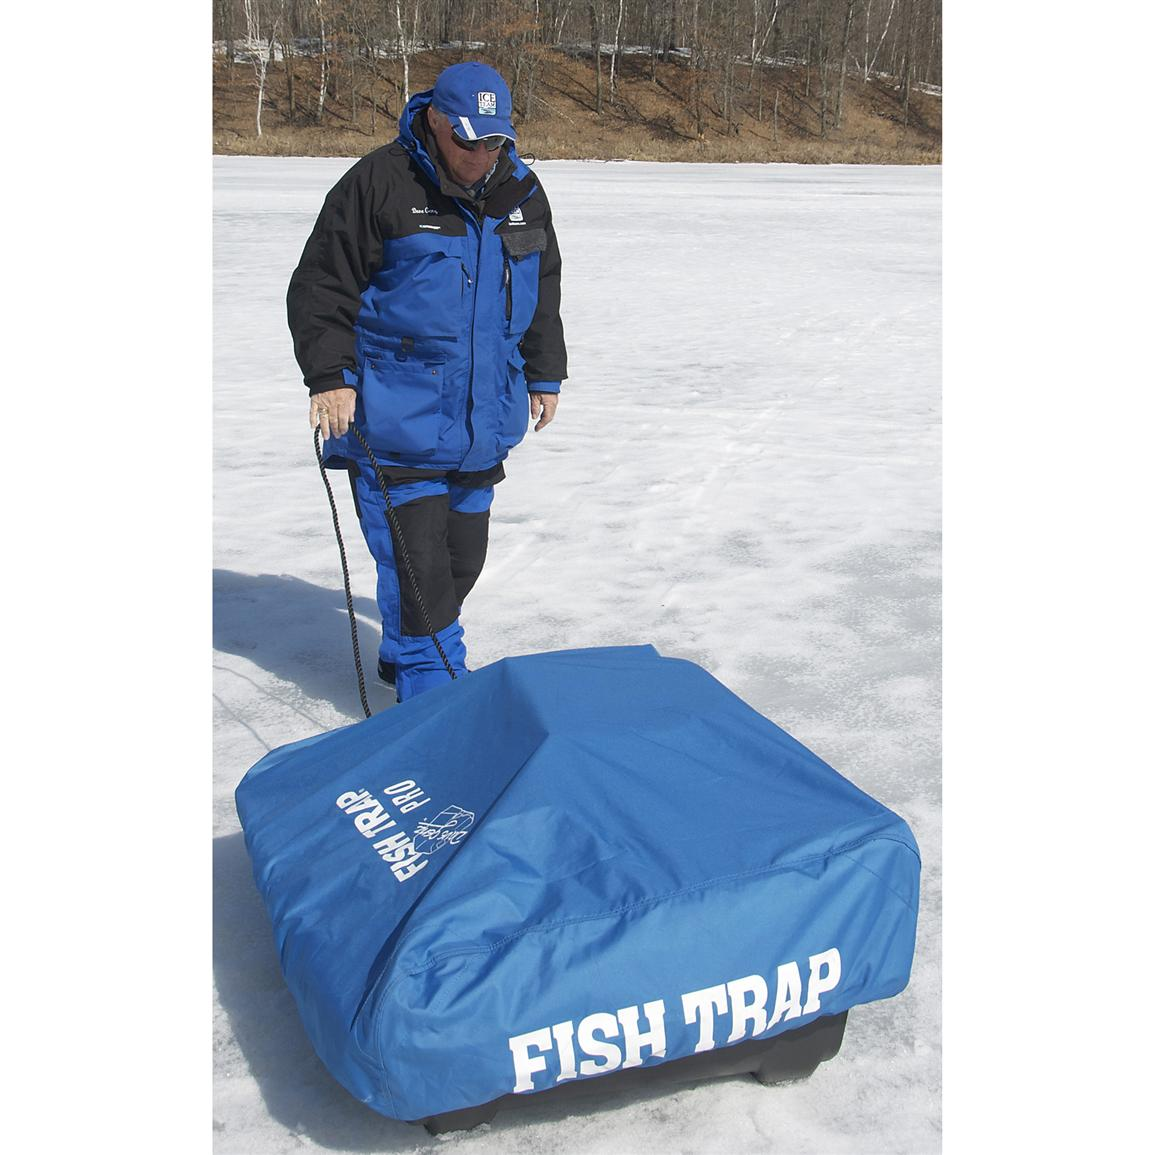 Clam fish trap travel cover pro 173297 ice fishing for Ice fishing gear list